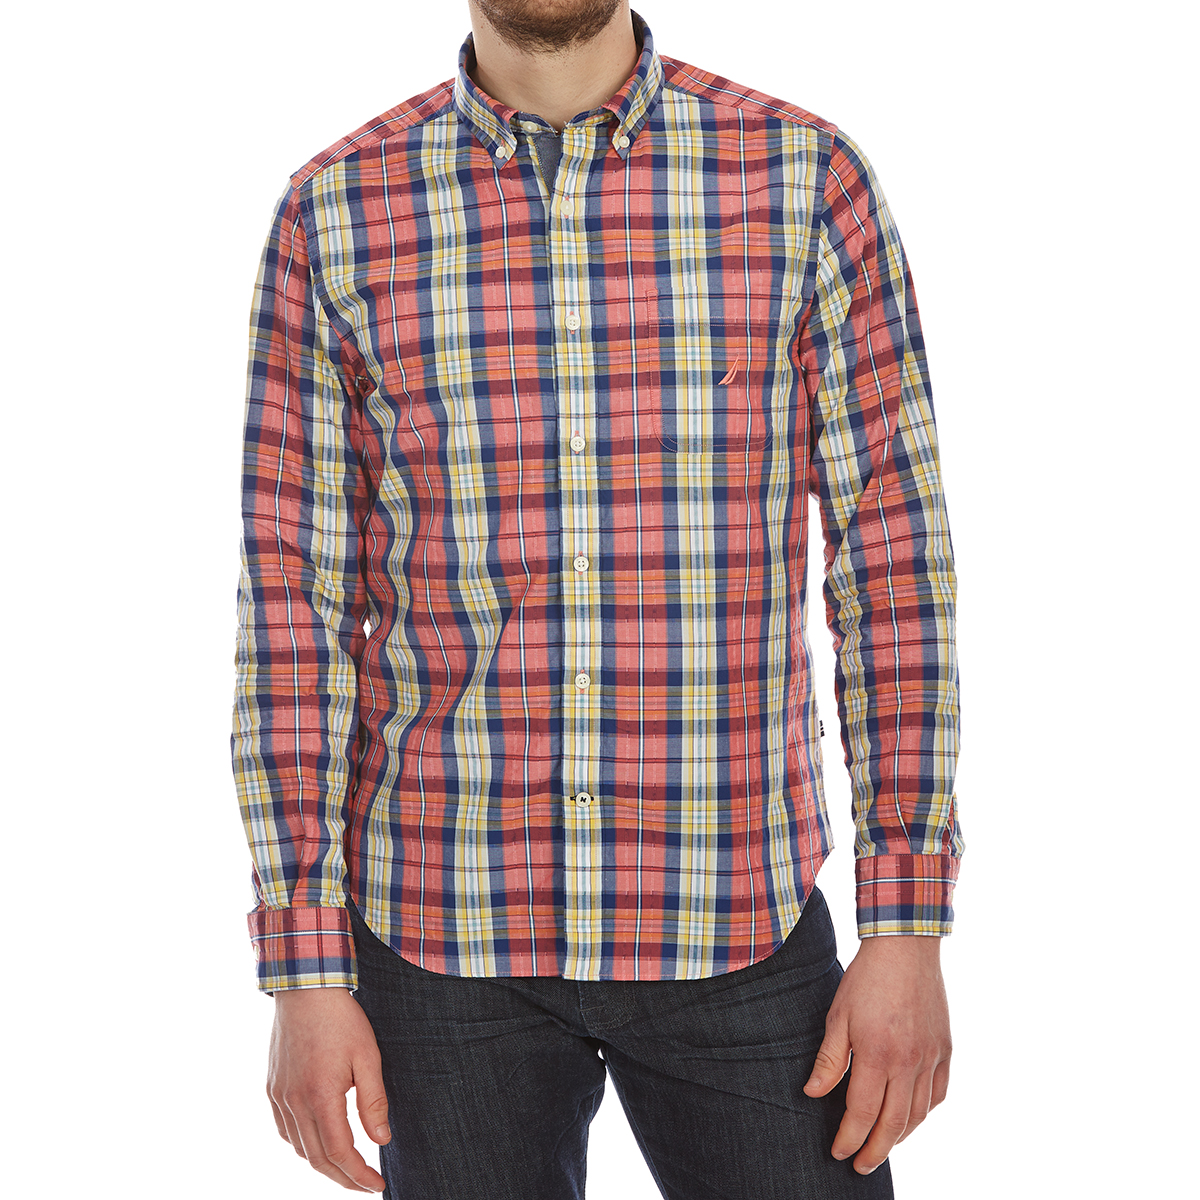 Nautica Men's Large Leno Plaid Woven Long-Sleeve Shirt - Red, L